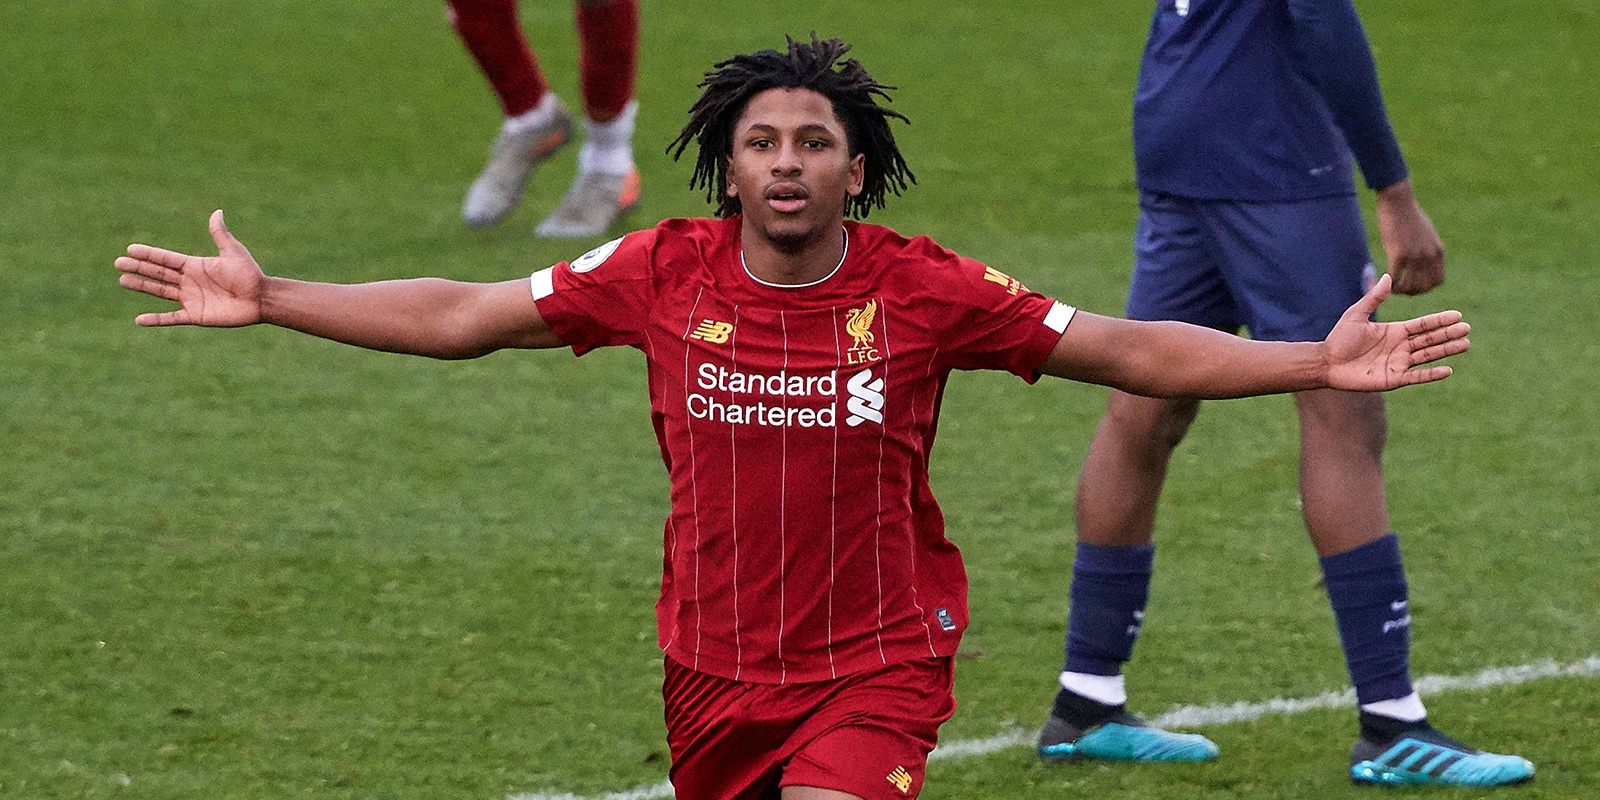 Liverpool starlet on Leeds' transfer list as Bielsa eyes fullback additions – report